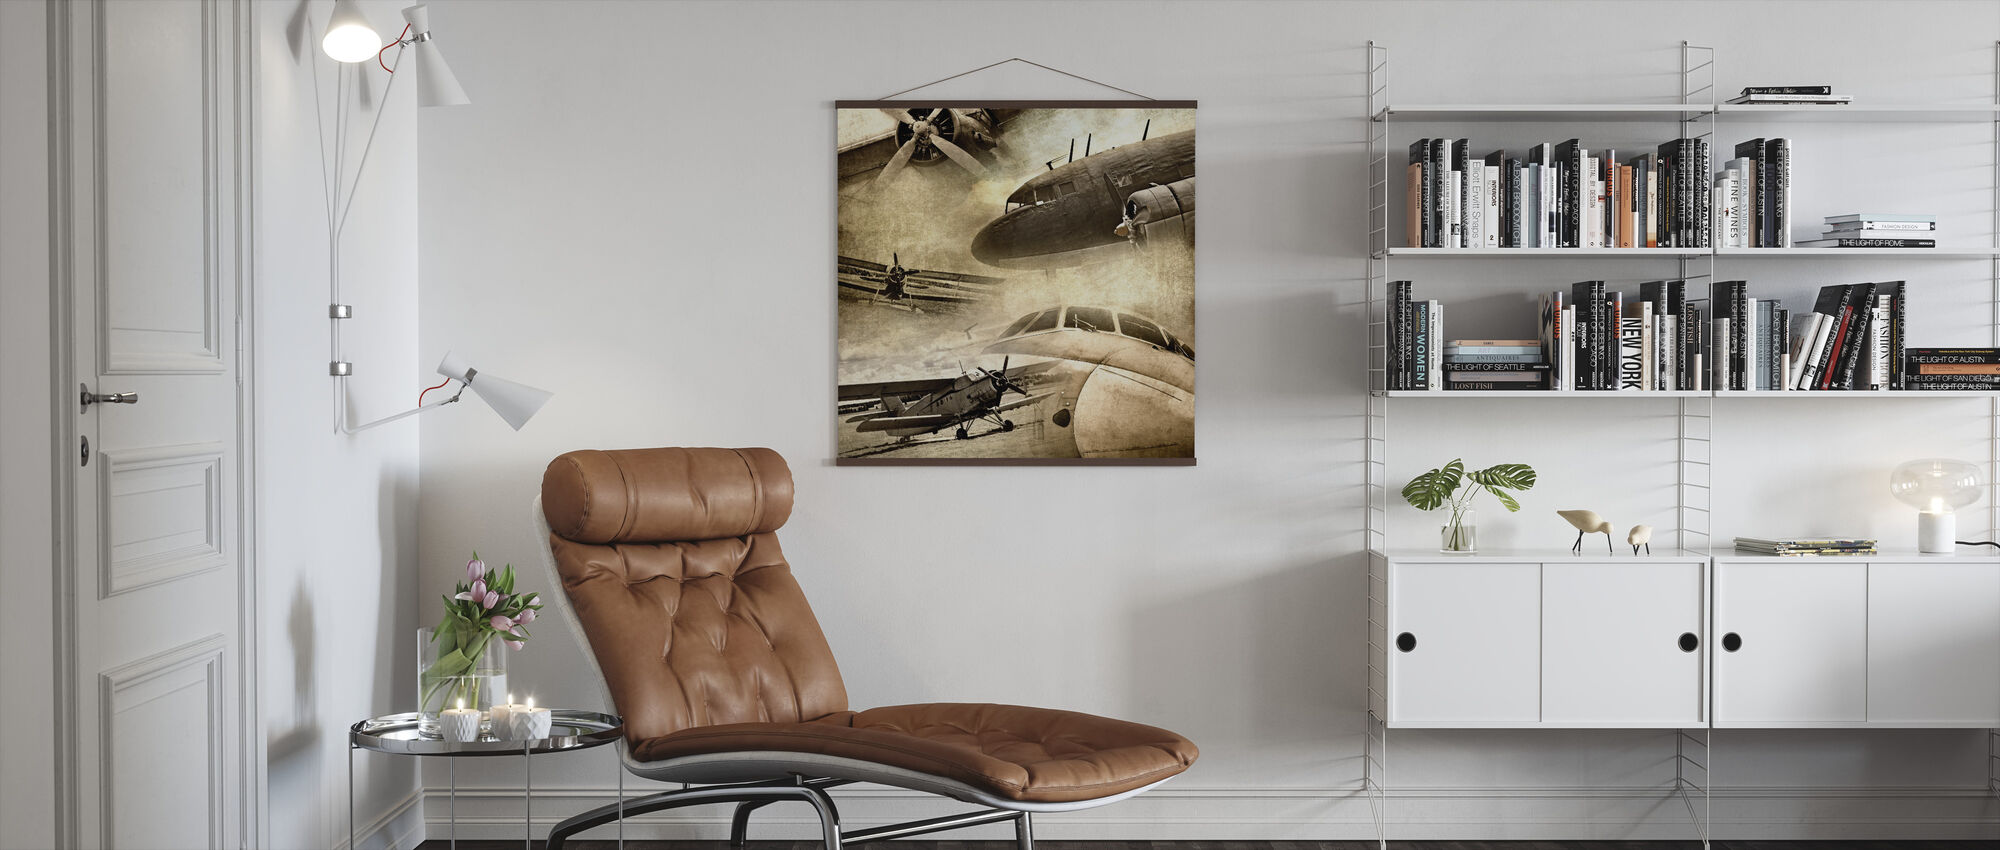 Retro Airplanes - Poster - Living Room